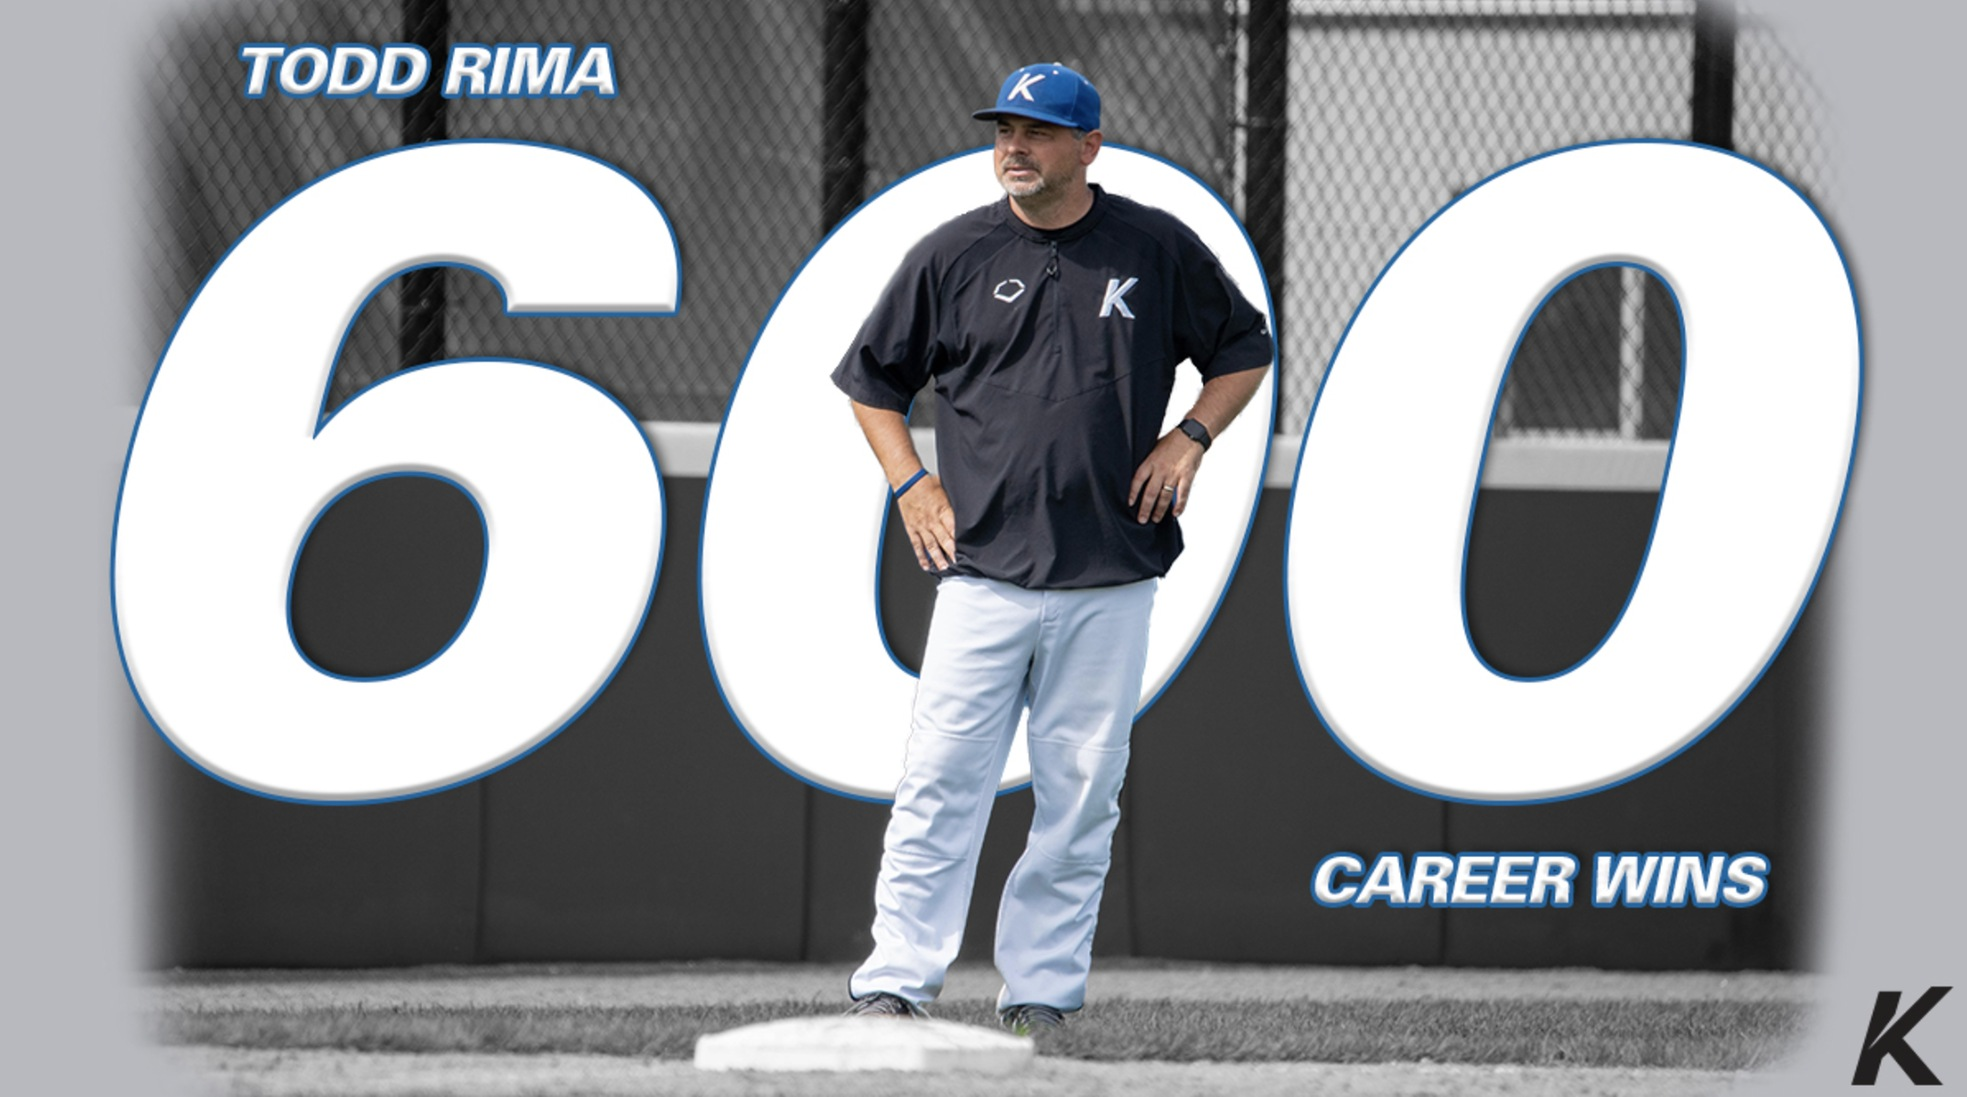 Rima reaches 600 wins as Kirkwood sweeps